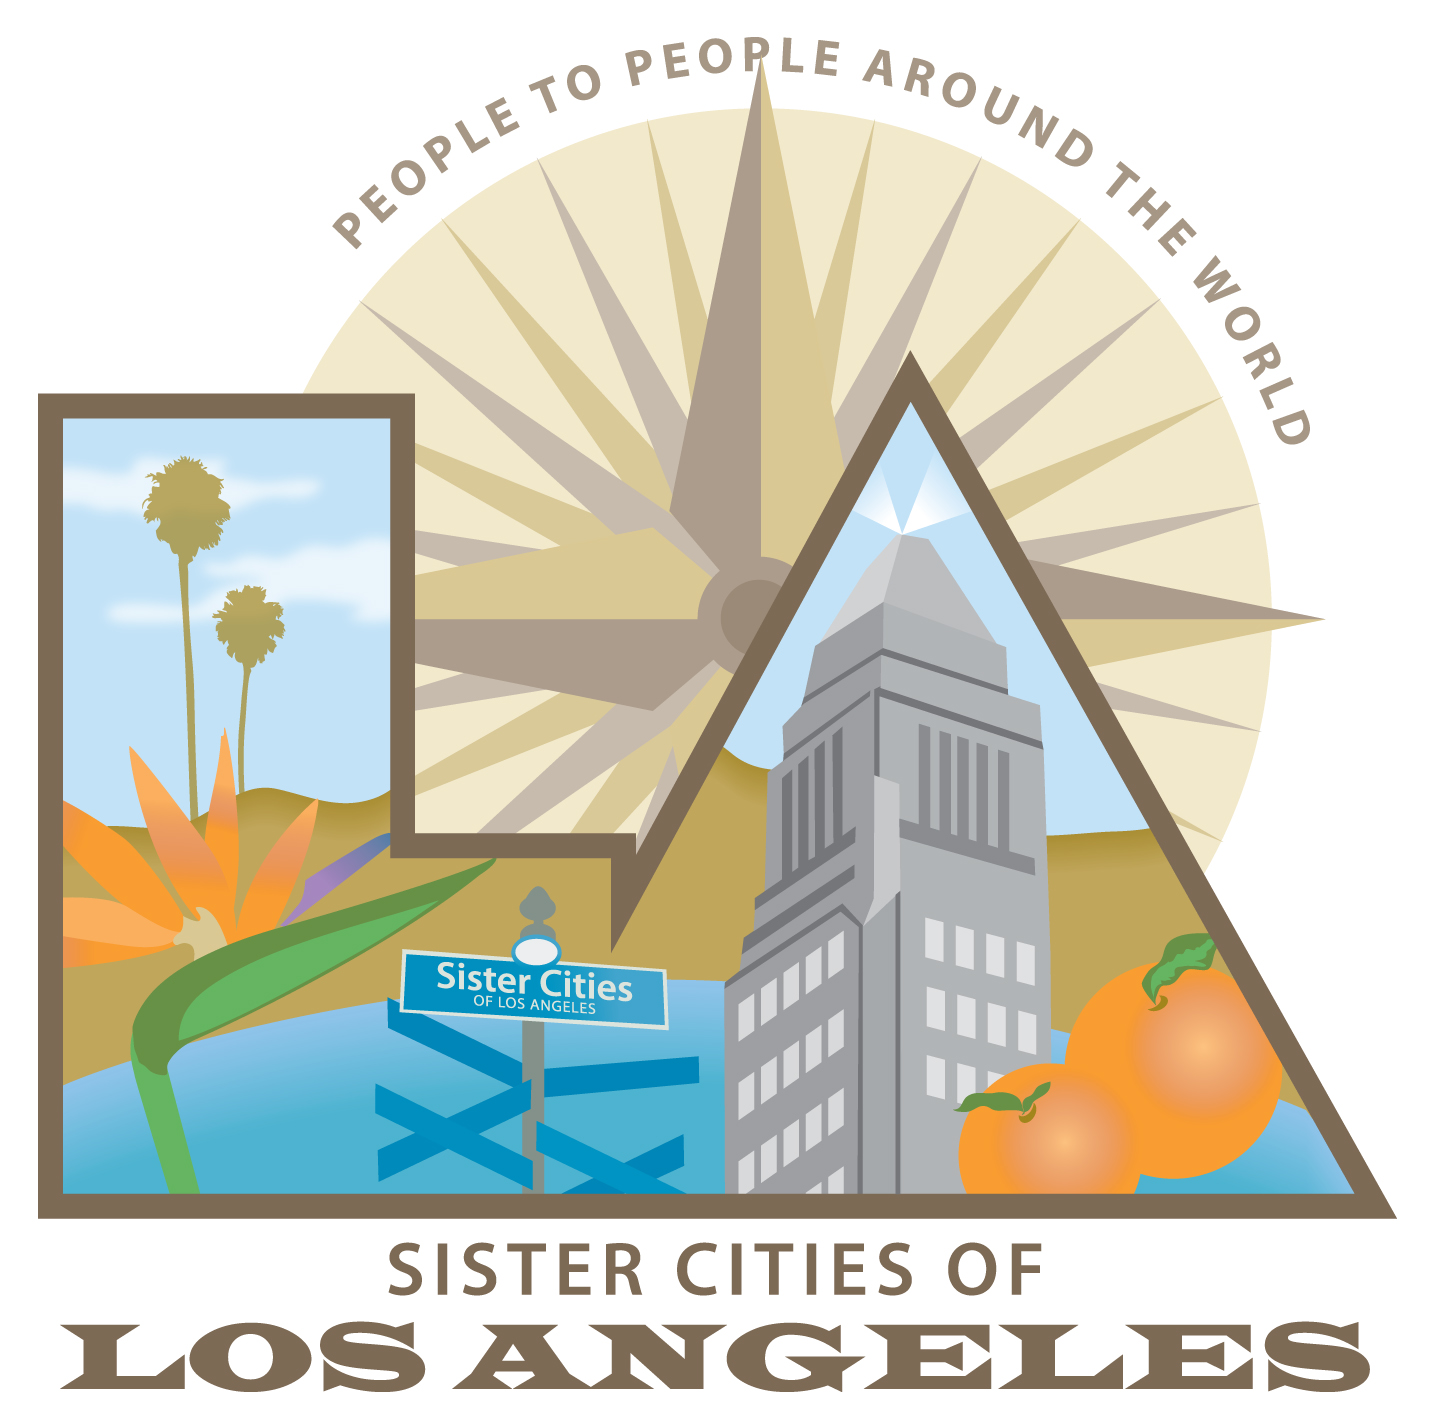 Sister Cities of Los Angeles